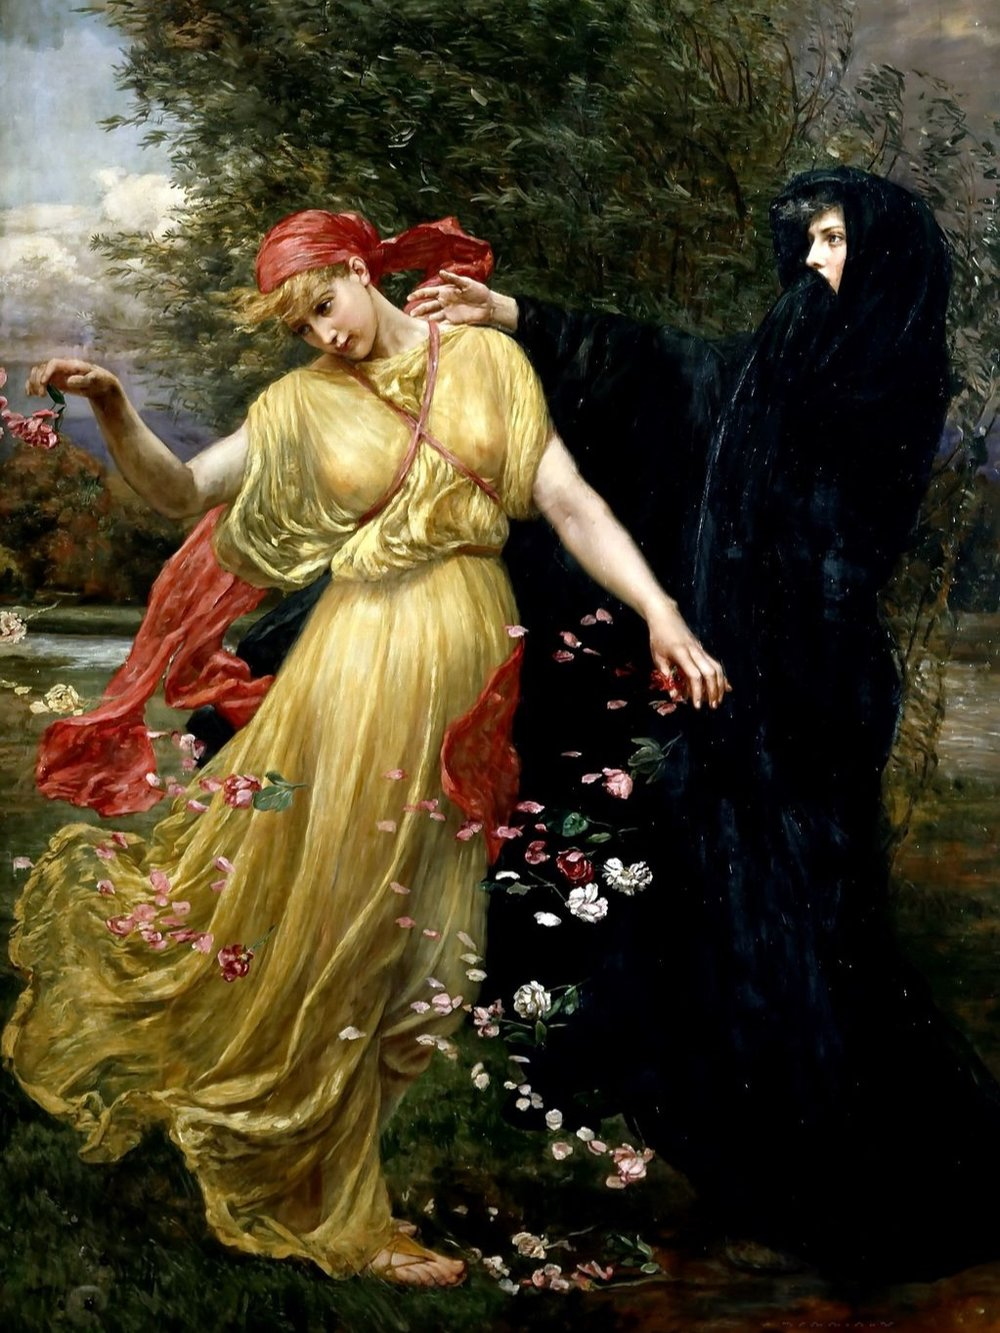 At the first touch of Winter, Summer fades away by Valentine Cameron Prinsep (1897)